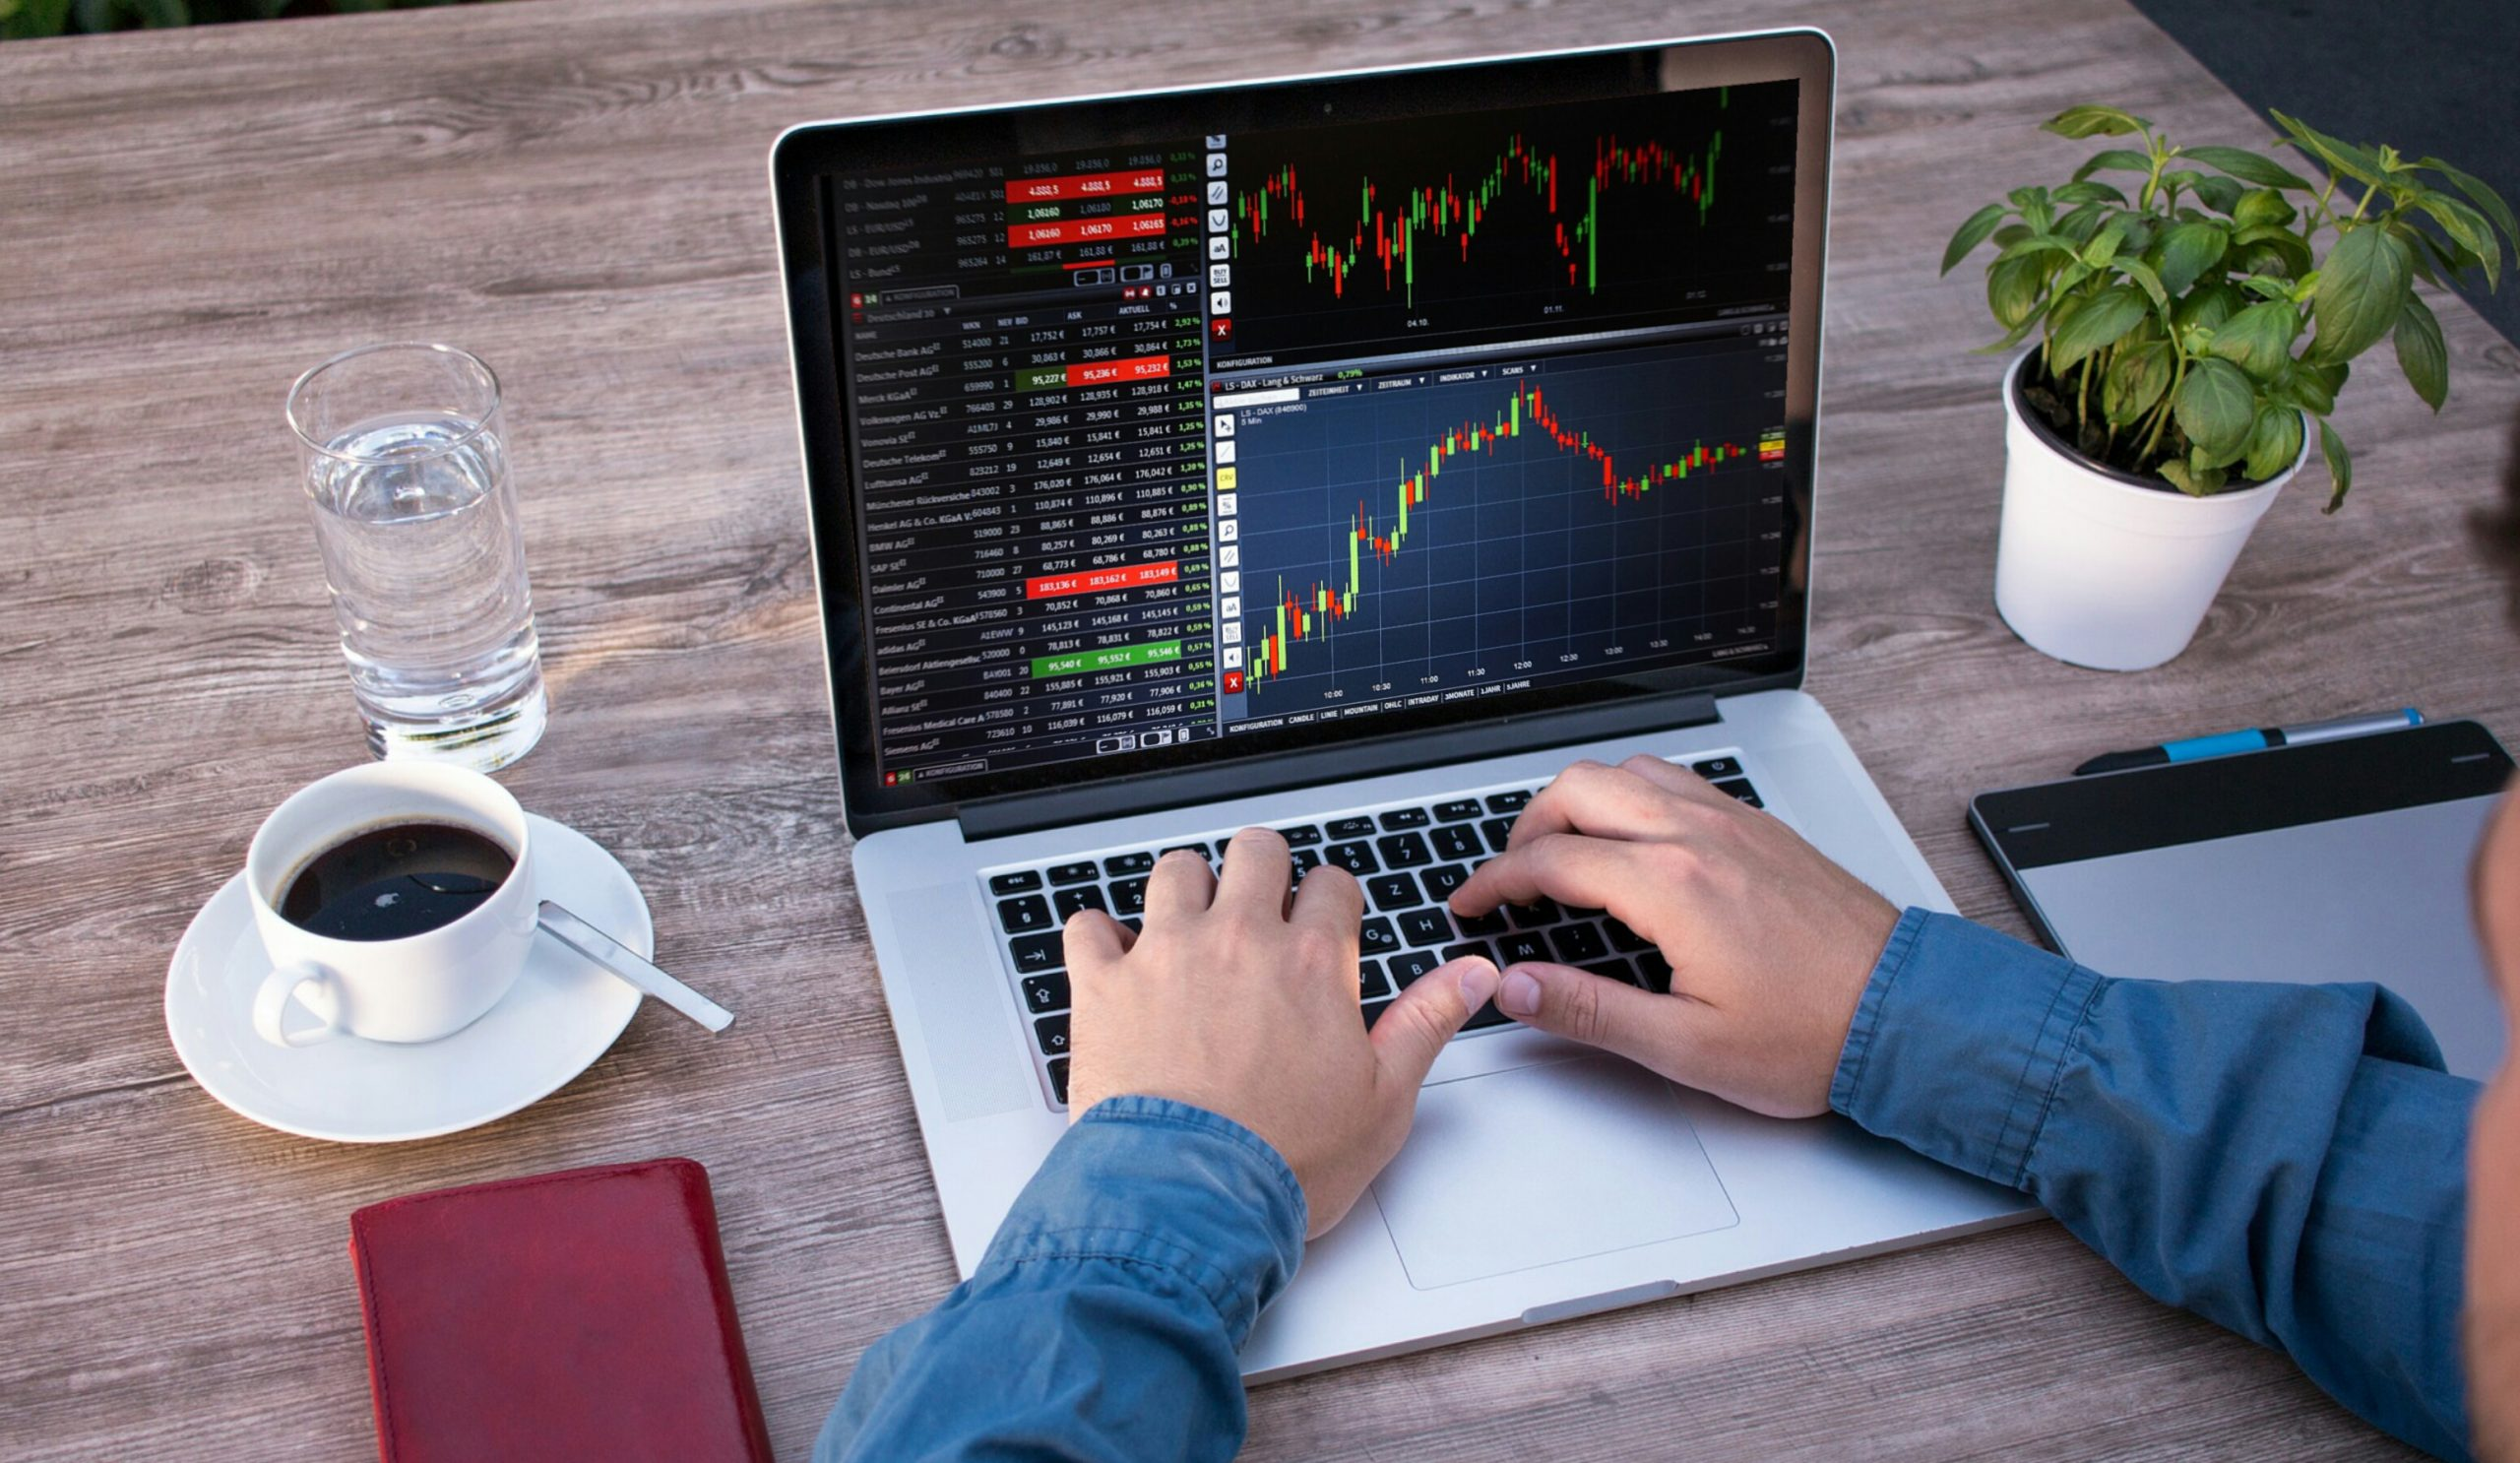 chart trading courses forex analysis shares 1457035 pxhere com